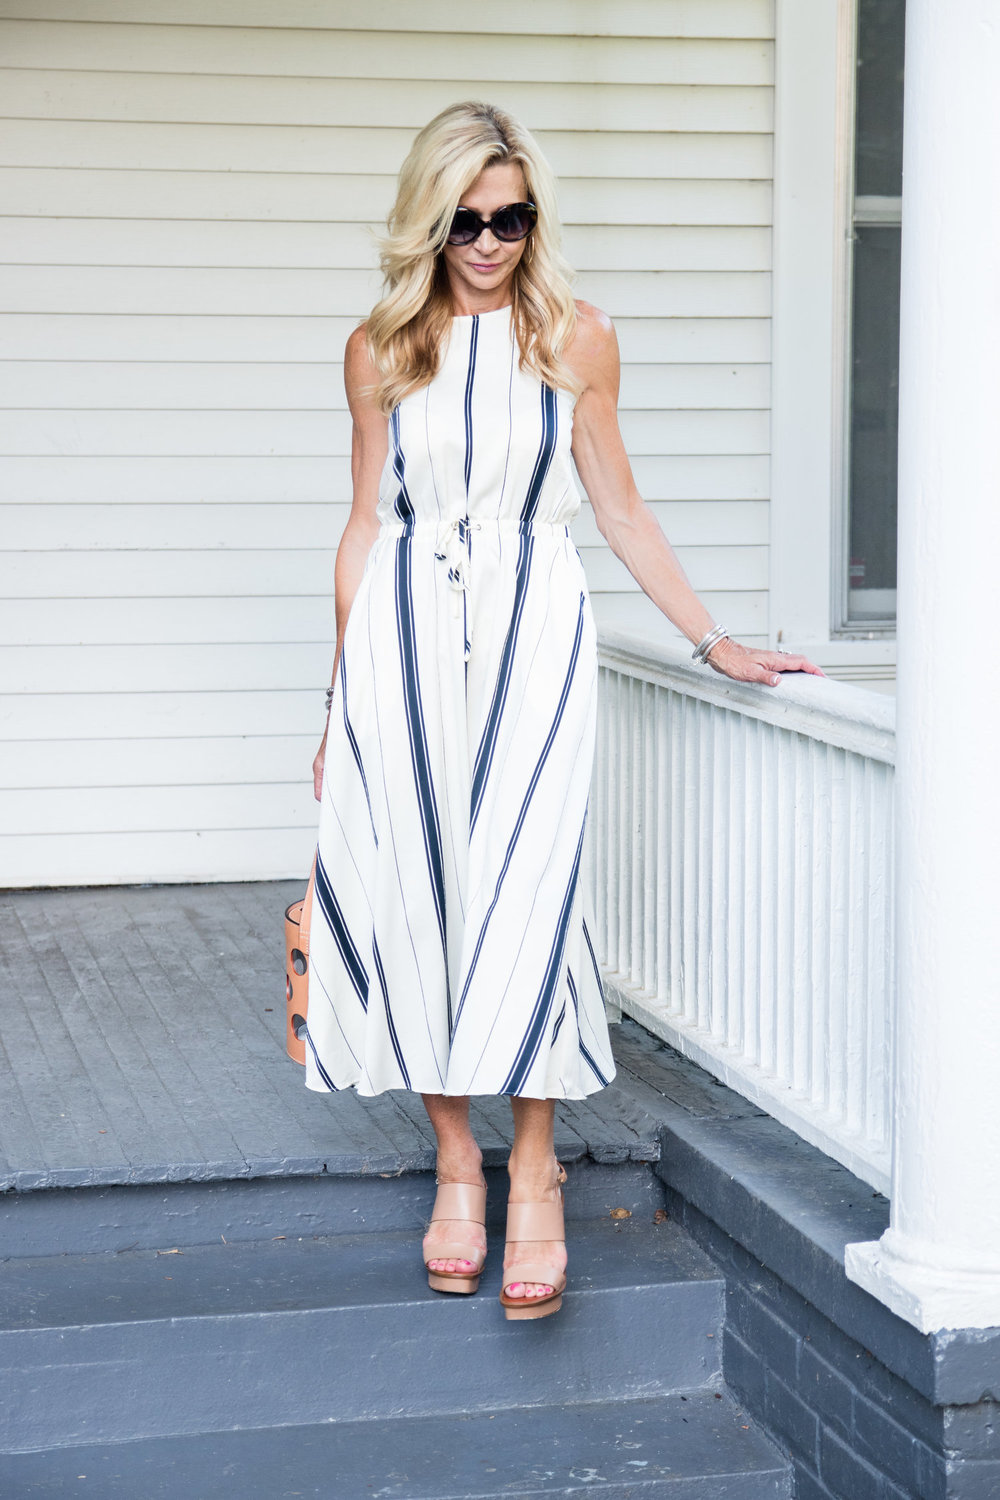 Loft+dress+with+Tory+Burch+bag+and+shoes+for+July+4th.jpg